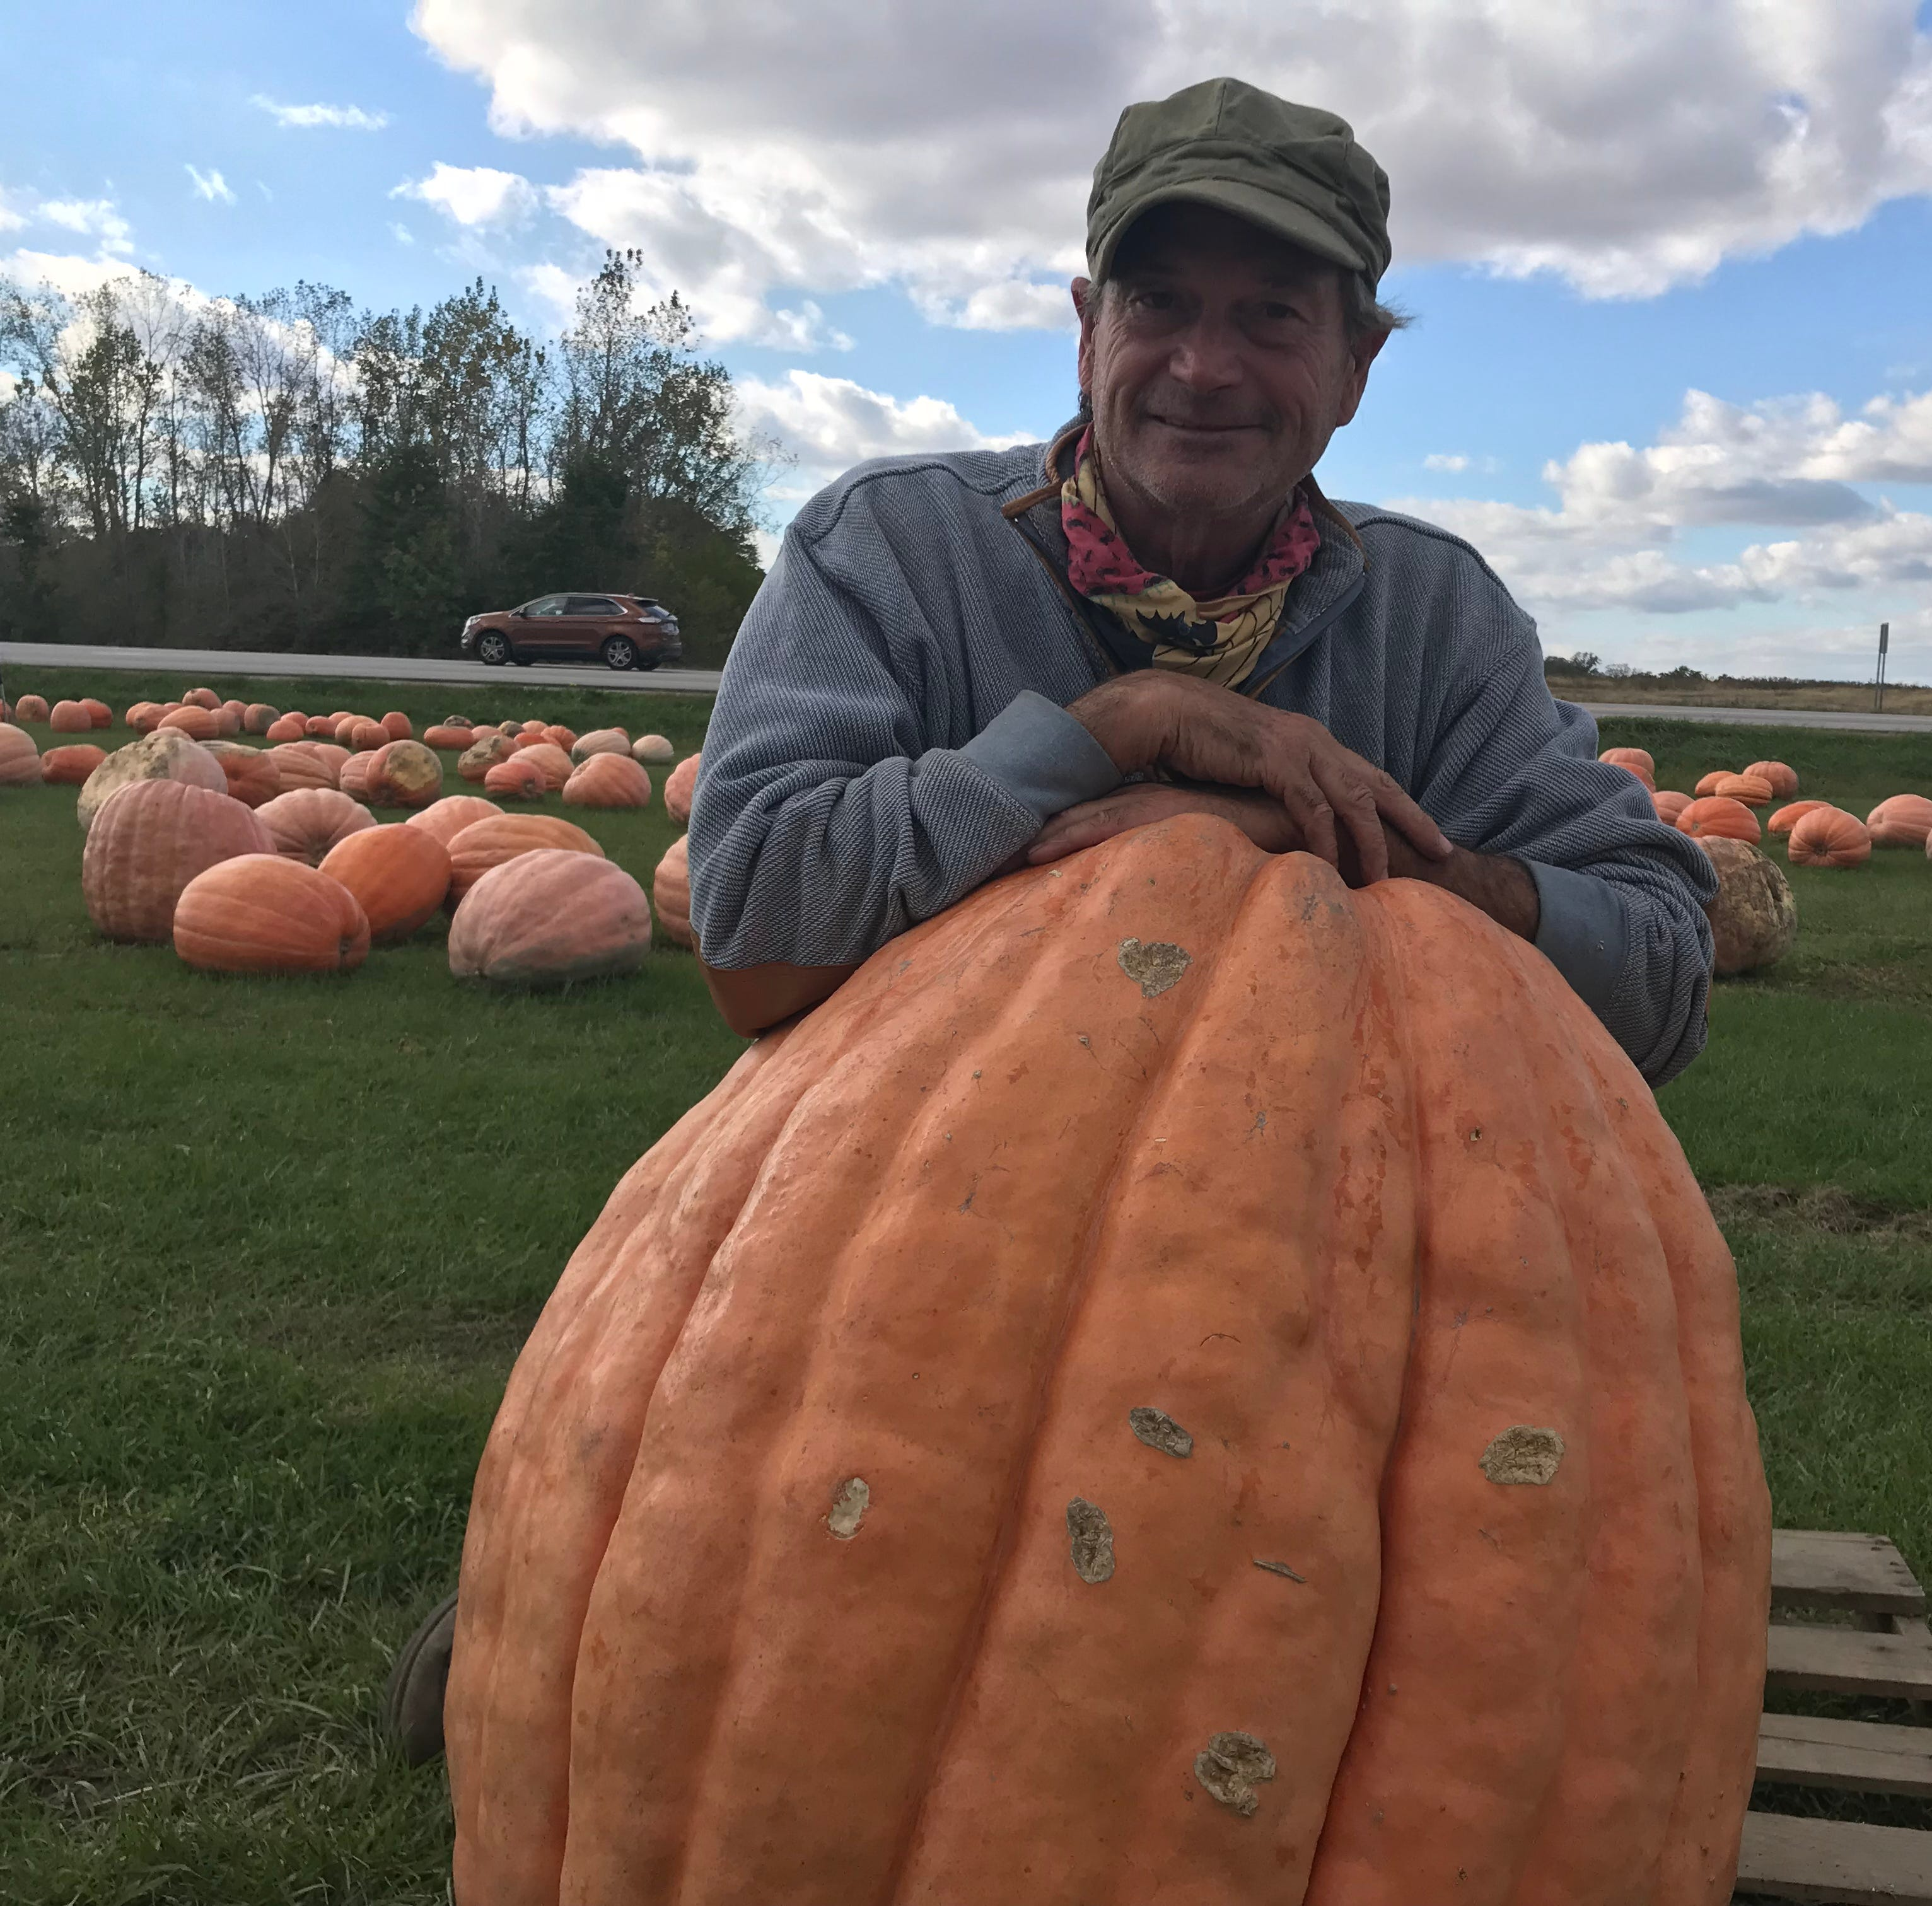 Fremont farmer goes big with crop of giant pumpkins